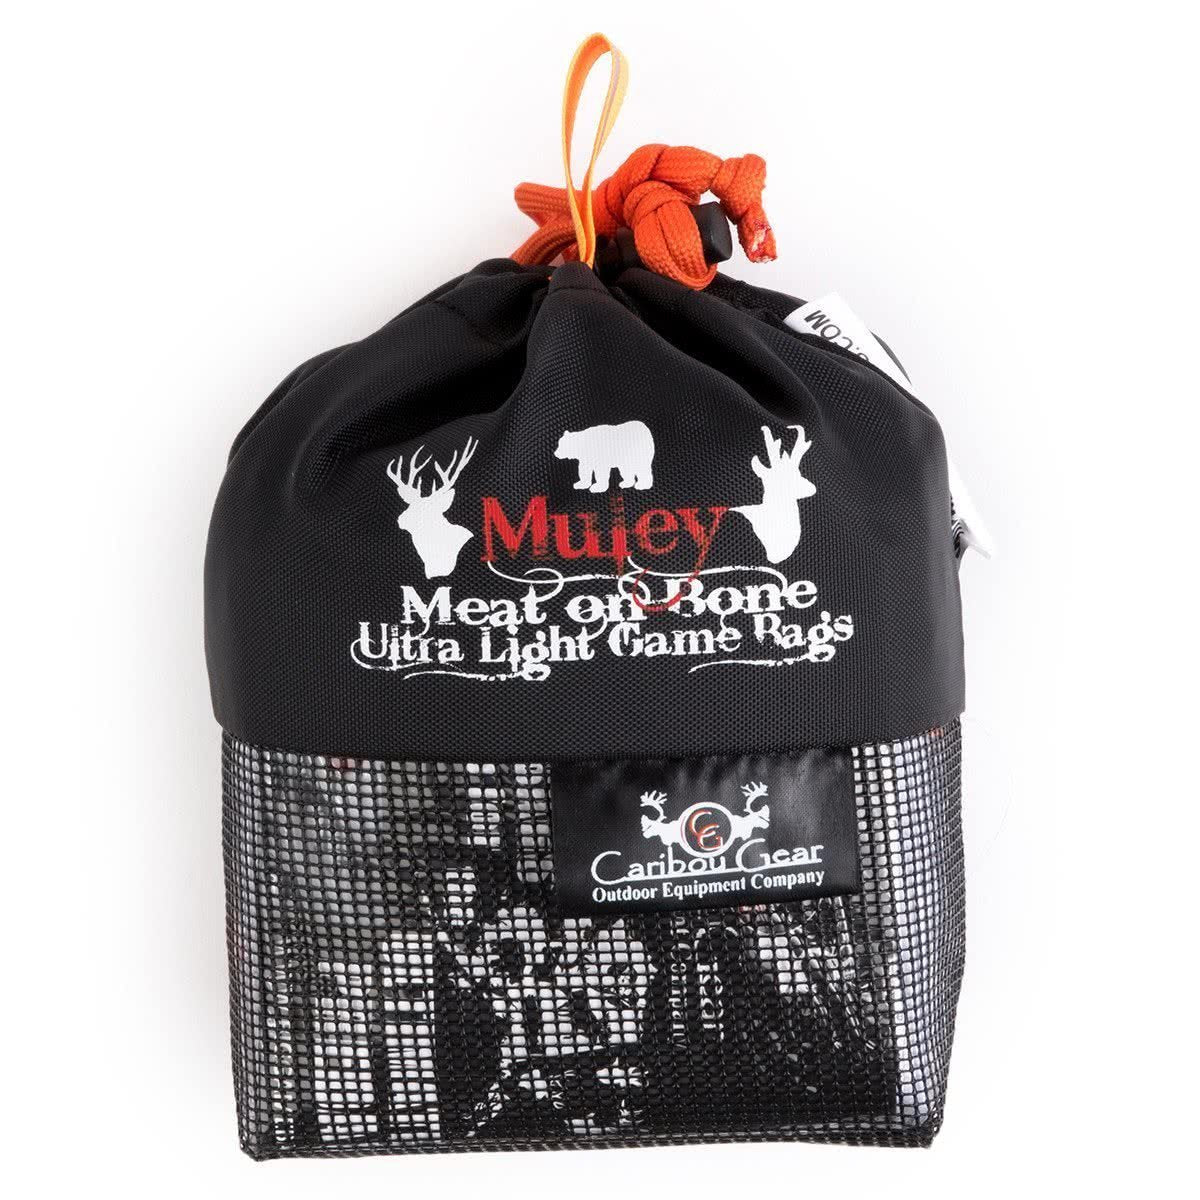 Caribou Gear Muley Meat On Bone Ultra-Light 5 Piece Game Bag Set Hero